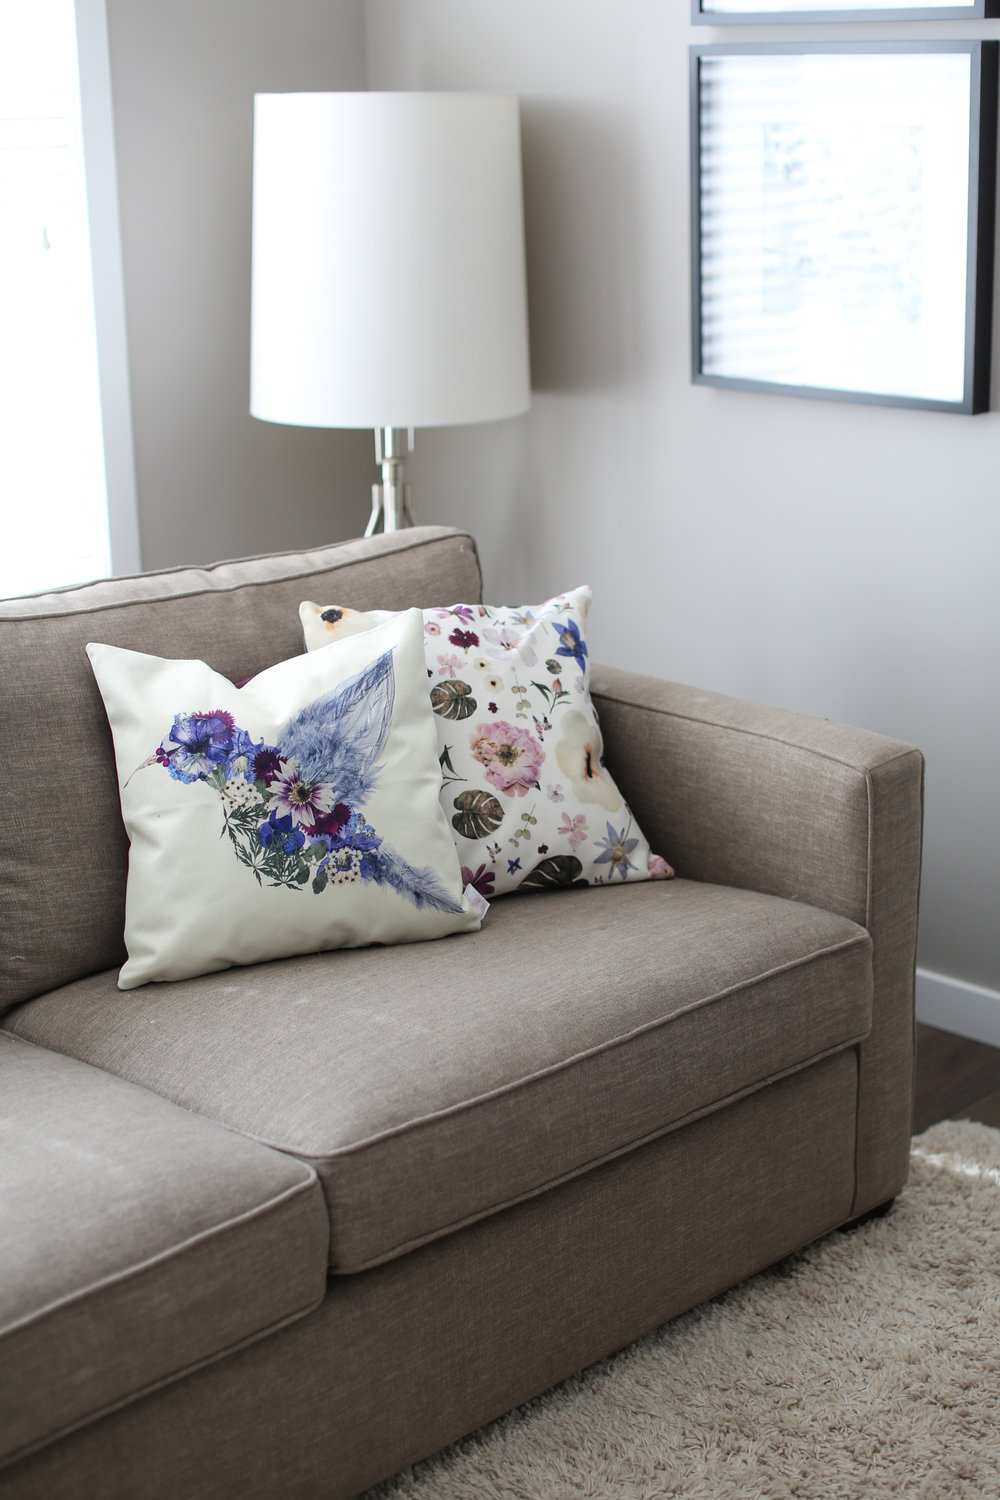 Pressed Floral Pillows